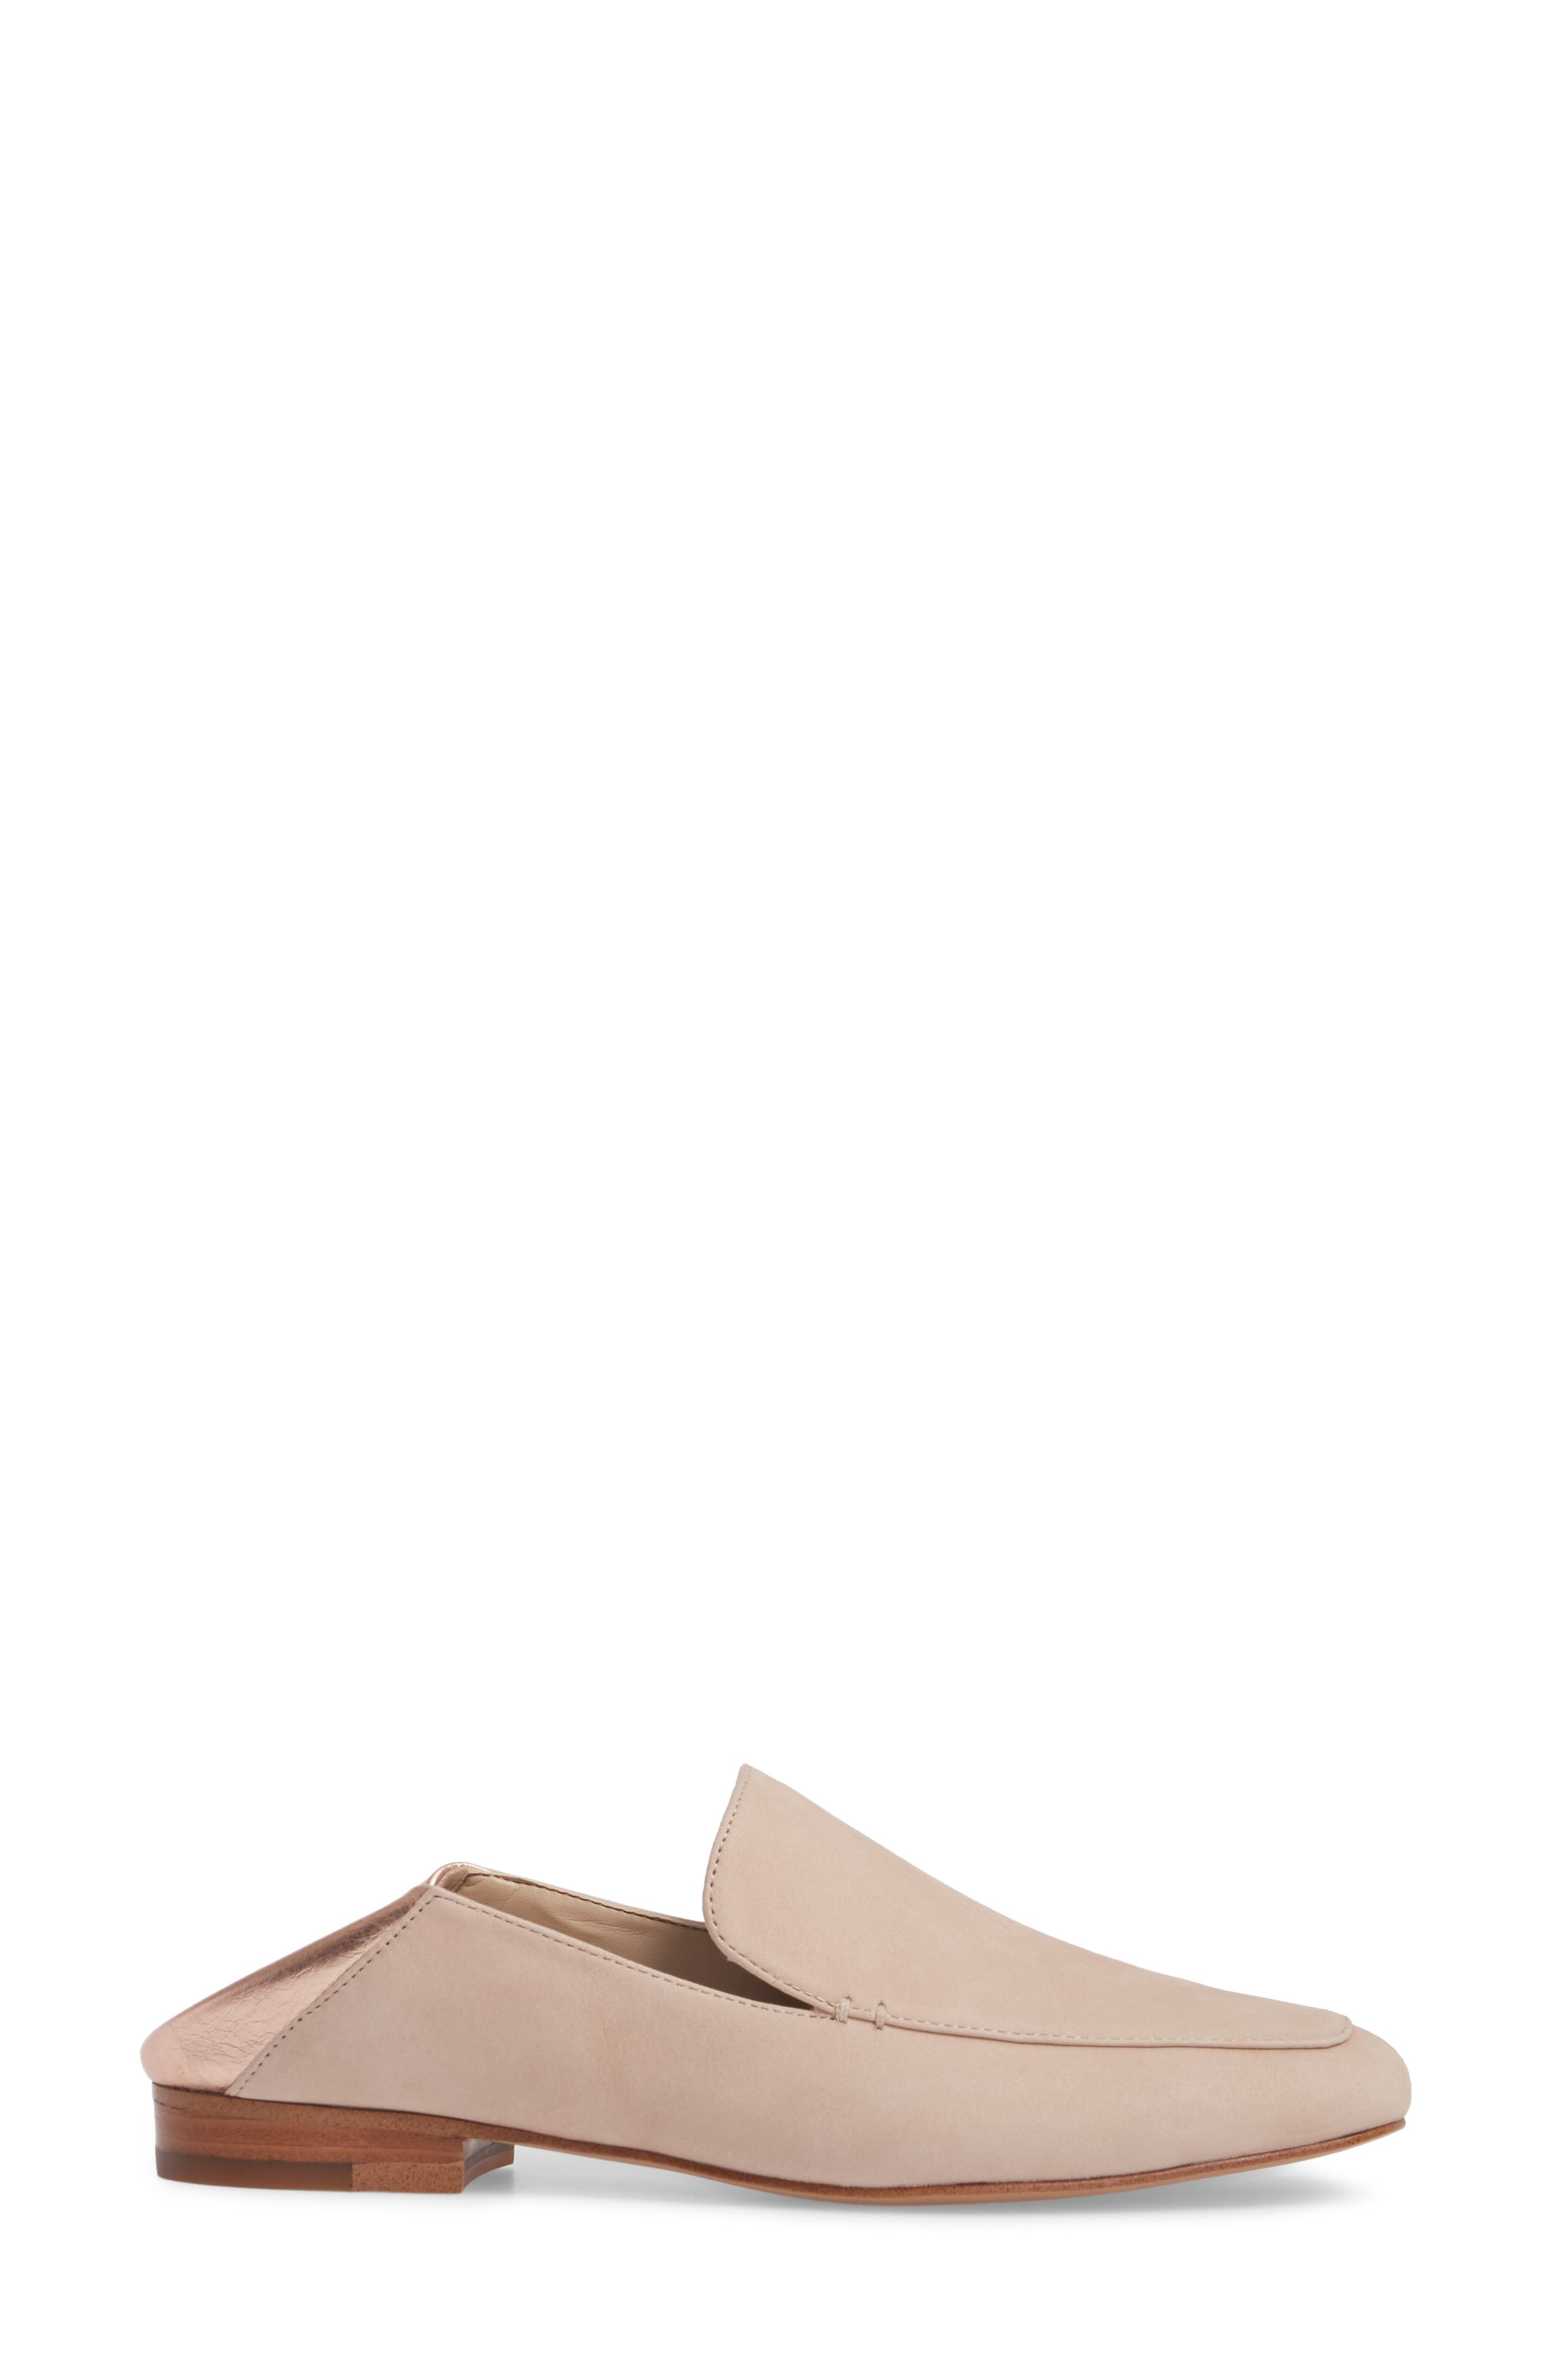 Faun Drop Heel Loafer,                             Alternate thumbnail 3, color,                             Cipria Leather